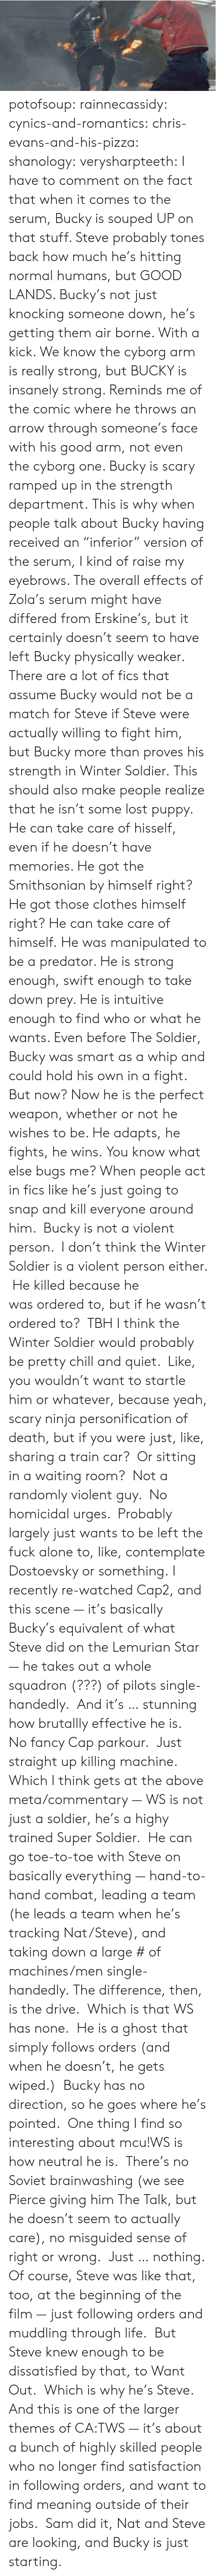 """Commentary: potofsoup: rainnecassidy:  cynics-and-romantics:  chris-evans-and-his-pizza:  shanology:  verysharpteeth:  I have to comment on the fact that when it comes to the serum, Bucky is souped UP on that stuff. Steve probably tones back how much he's hitting normal humans, but GOOD LANDS. Bucky's not just knocking someone down, he's getting them air borne. With a kick. We know the cyborg arm is really strong, but BUCKY is insanely strong. Reminds me of the comic where he throws an arrow through someone's face with his good arm, not even the cyborg one. Bucky is scary ramped up in the strength department.  This is why when people talk about Bucky having received an """"inferior"""" version of the serum, I kind of raise my eyebrows. The overall effects of Zola's serum might have differed from Erskine's, but it certainly doesn't seem to have left Bucky physically weaker. There are a lot of fics that assume Bucky would not be a match for Steve if Steve were actually willing to fight him, but Bucky more than proves his strength in Winter Soldier.  This should also make people realize that he isn't some lost puppy. He can take care of hisself, even if he doesn't have memories. He got the Smithsonian by himself right? He got those clothes himself right? He can take care of himself.  He was manipulated to be a predator. He is strong enough, swift enough to take down prey. He is intuitive enough to find who or what he wants. Even before The Soldier, Bucky was smart as a whip and could hold his own in a fight. But now? Now he is the perfect weapon, whether or not he wishes to be. He adapts, he fights, he wins.  You know what else bugs me? When people act in fics like he's just going to snap and kill everyone around him. Bucky is not a violent person. I don't think the Winter Soldier is a violent person either. He killed because he wasordered to, but if he wasn't ordered to? TBH I think the Winter Soldier would probably be pretty chill and quiet. Like, you wouldn't want to star"""